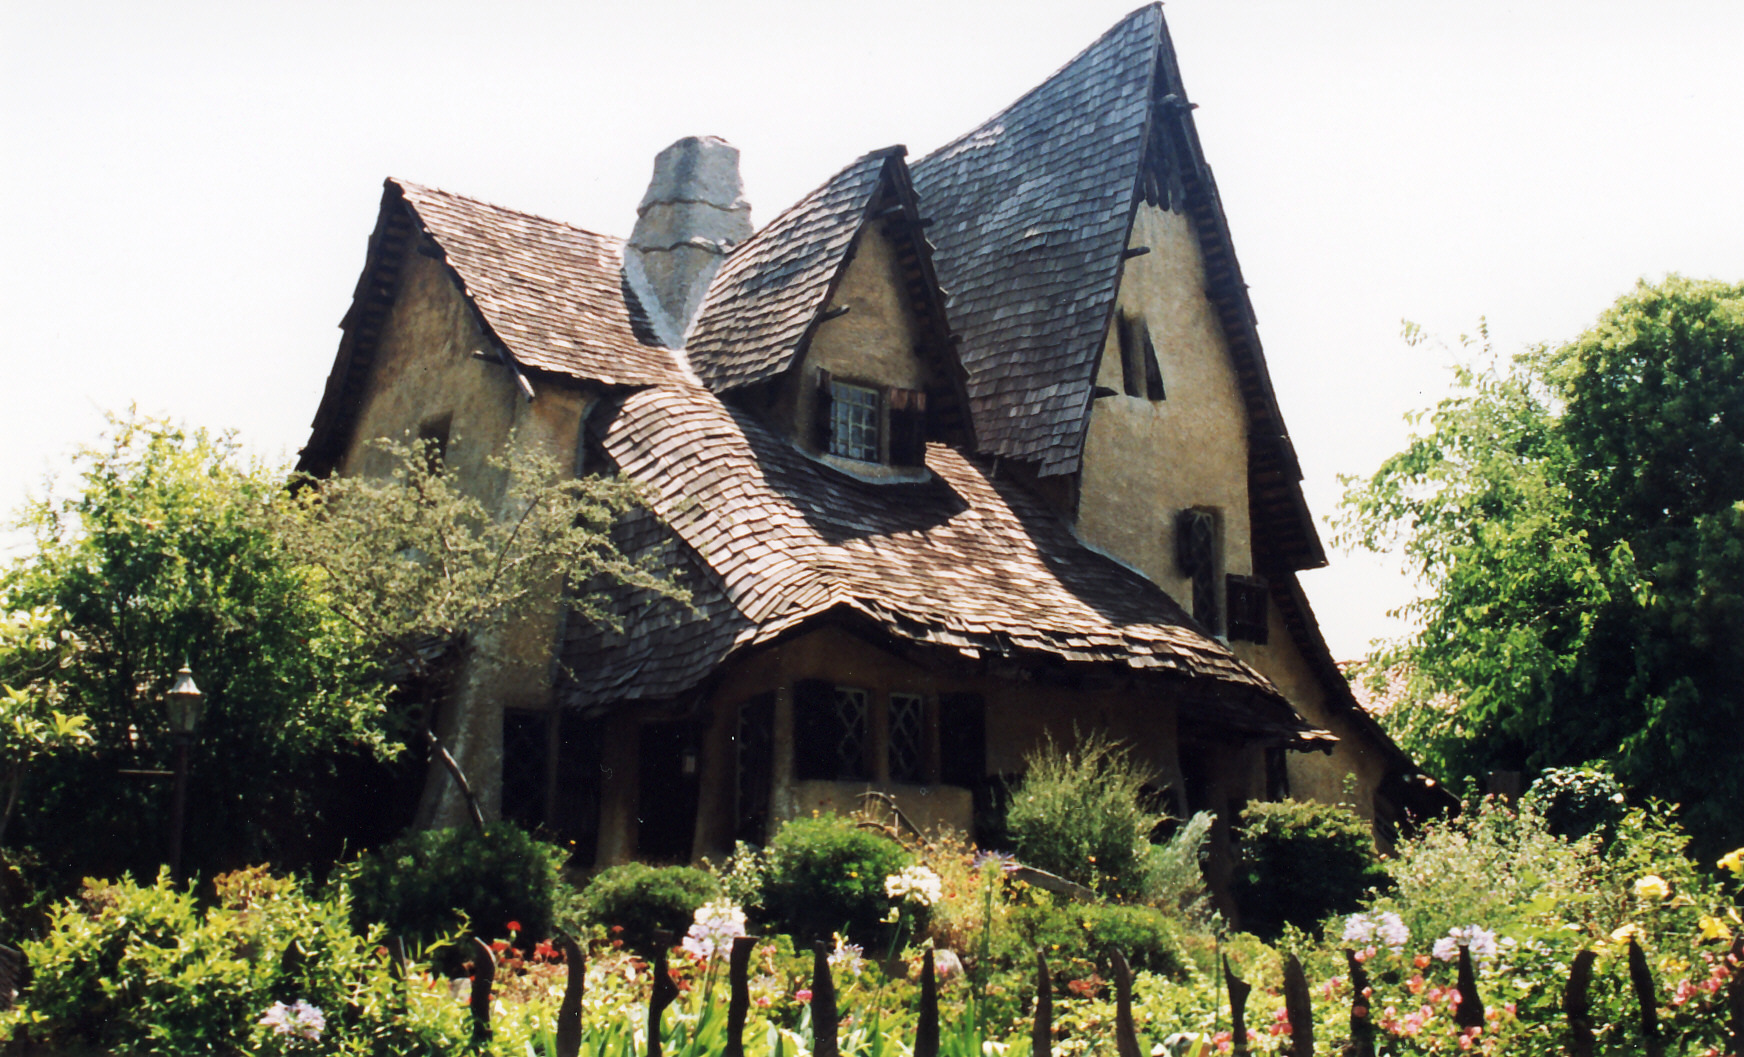 The witch 39 s house random photo 23249896 fanpop for What is a shouse house